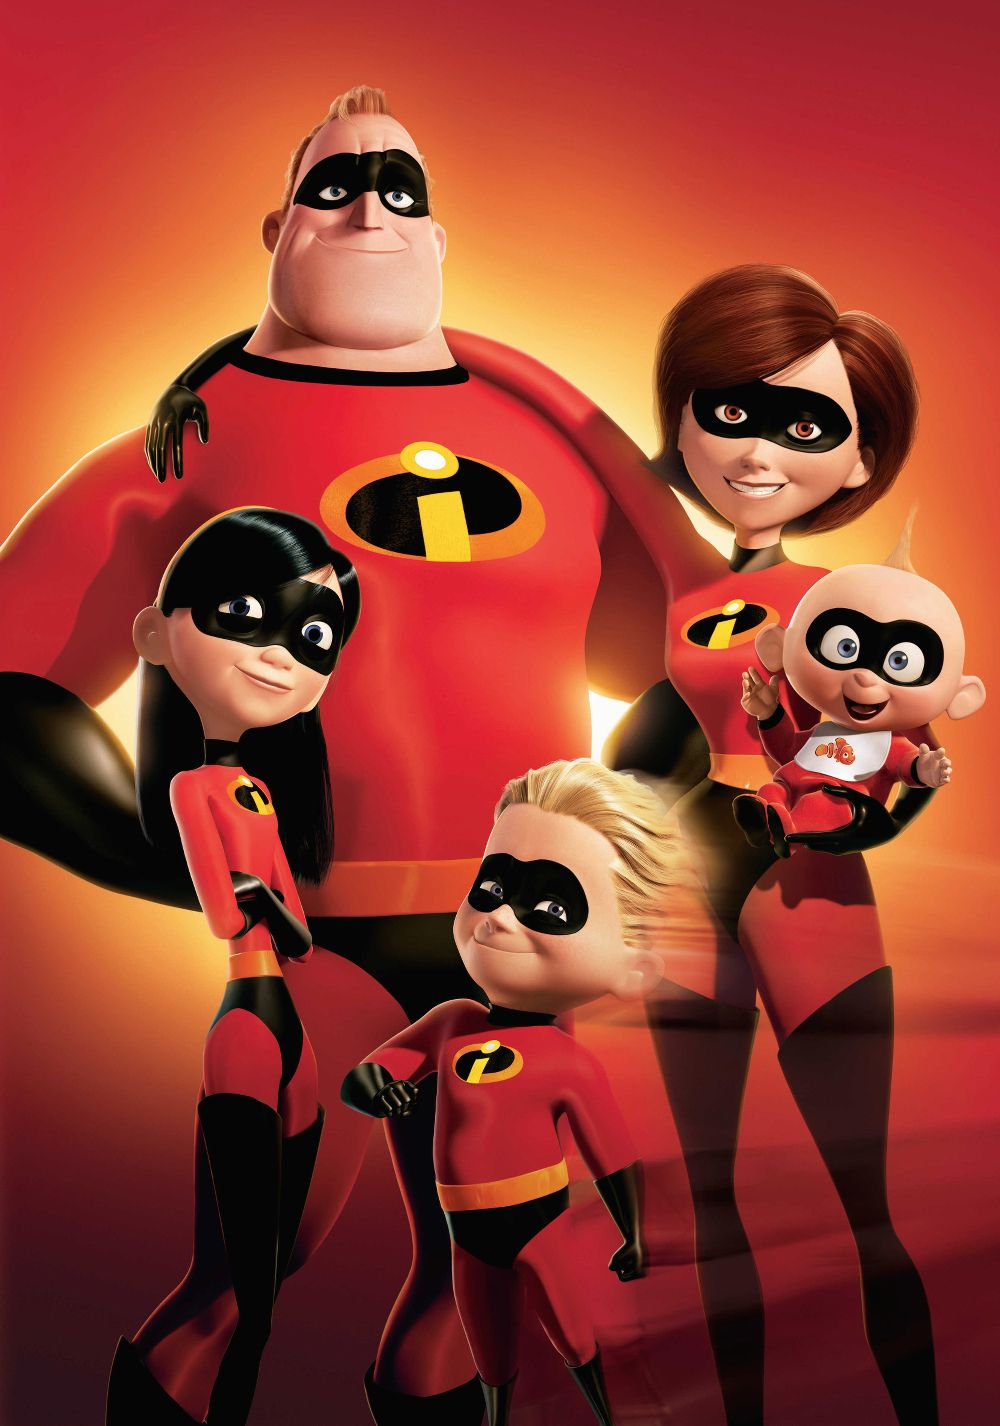 Elastigirl/Gallery Action movies to watch, Action movies